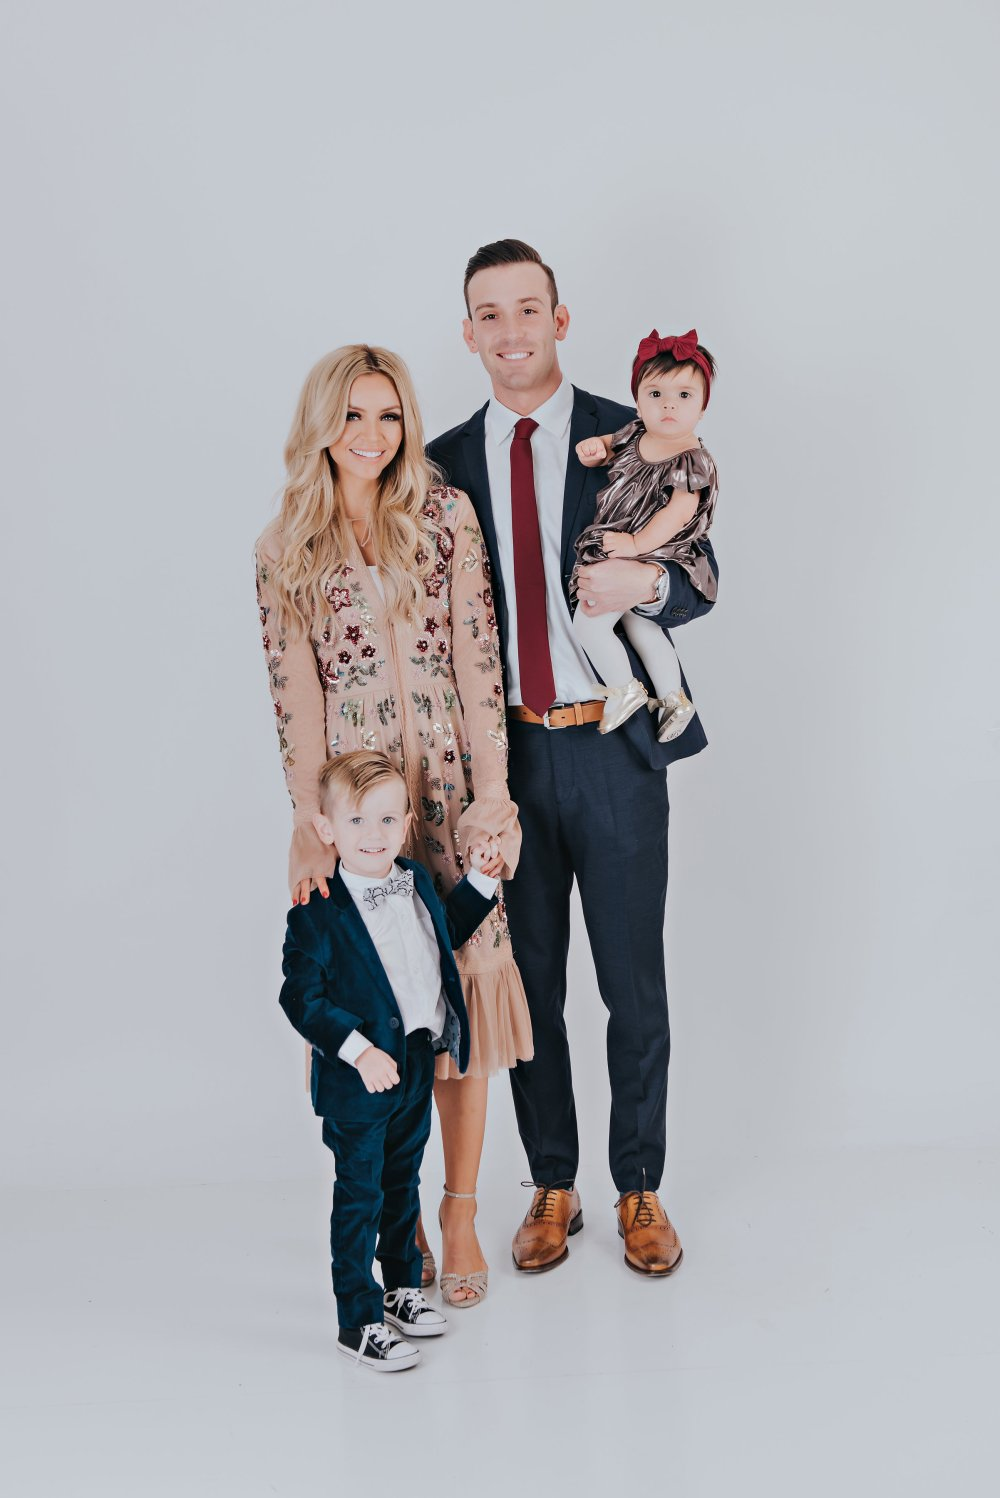 Sharing our family photo session with you today! These were for our Christmas cards, but the outfits and poses can be used for any type of family photo session! I hope these can give you inspiration and family photo ideas! #familyphotos #familyphotooutfits #coordinatingoutfits #familyoffour